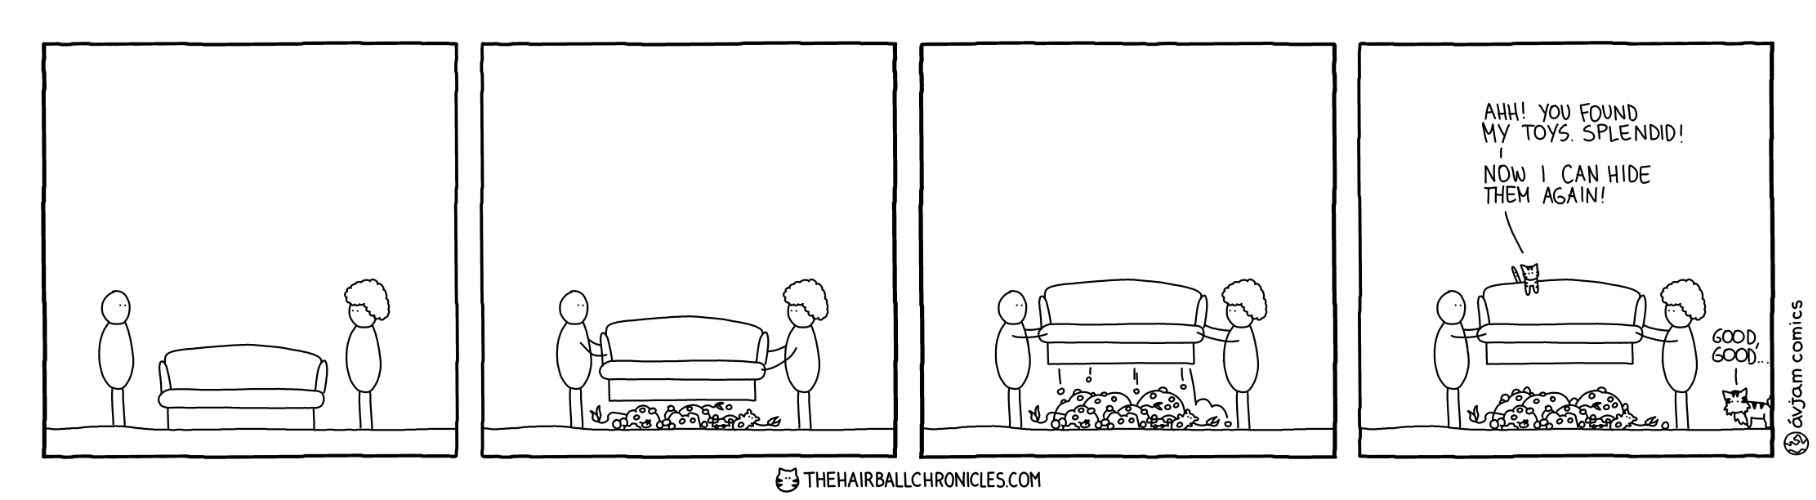 0035 – Couch